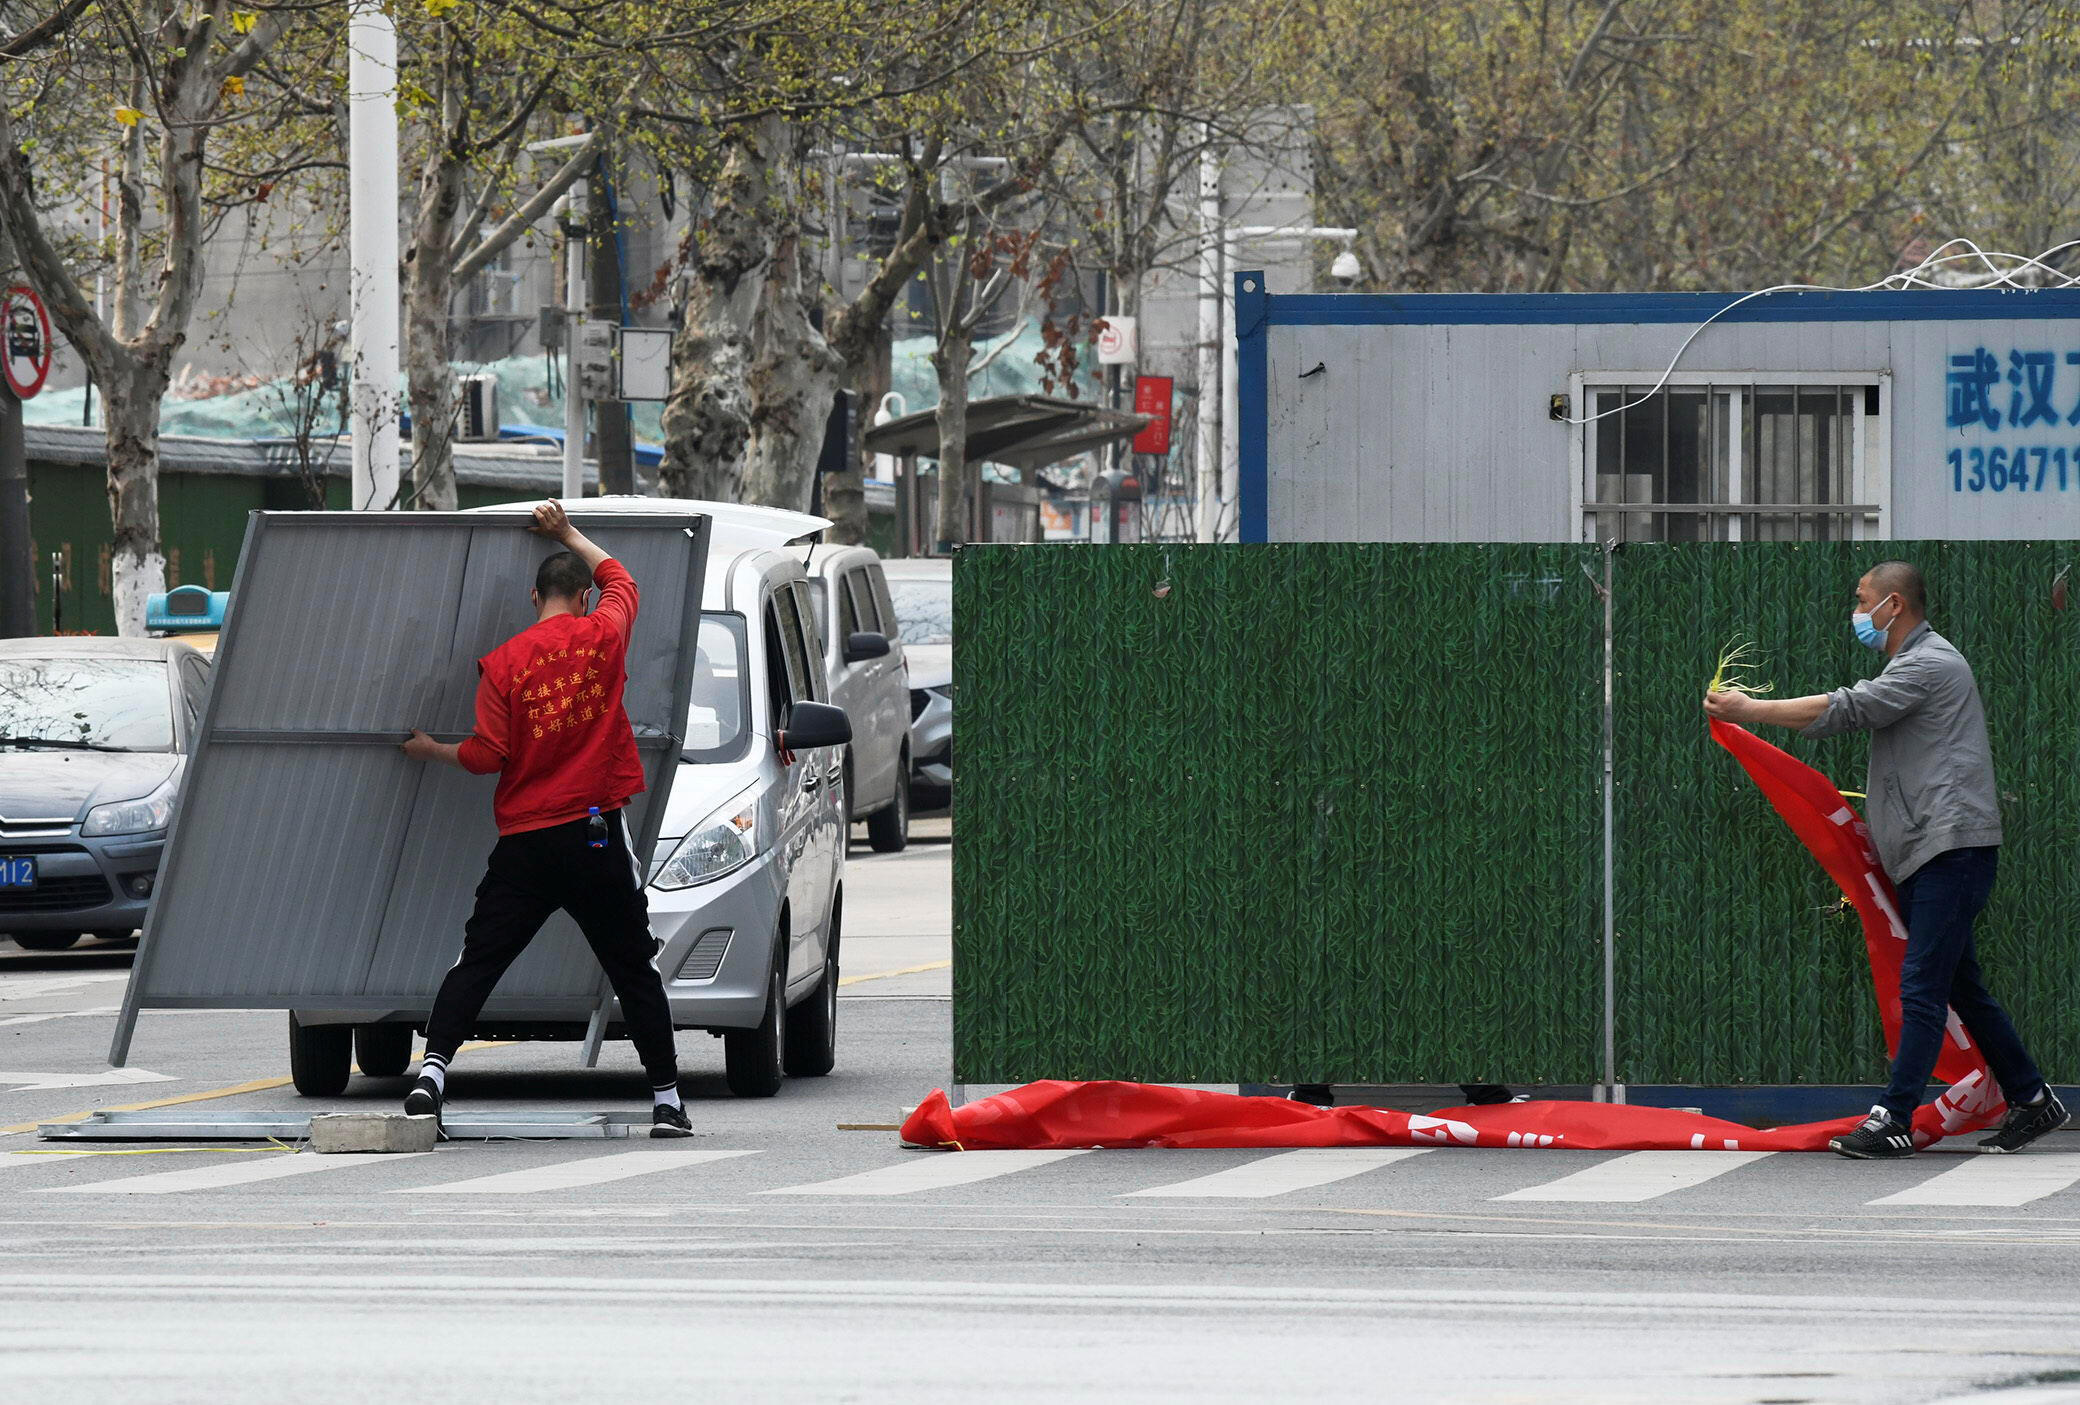 Workers wearing face masks remove barriers on a street in Wuhan, the epicentre of the novel coronavirus disease (COVID-19) outbreak, as the city has started to loosen its lockdown, in Hubei province, China March 21, 2020. Picture taken March 21, 2020. China Daily via REUTERS ATTENTION EDITORS - THIS IMAGE WAS PROVIDED BY A THIRD PARTY. CHINA OUT.